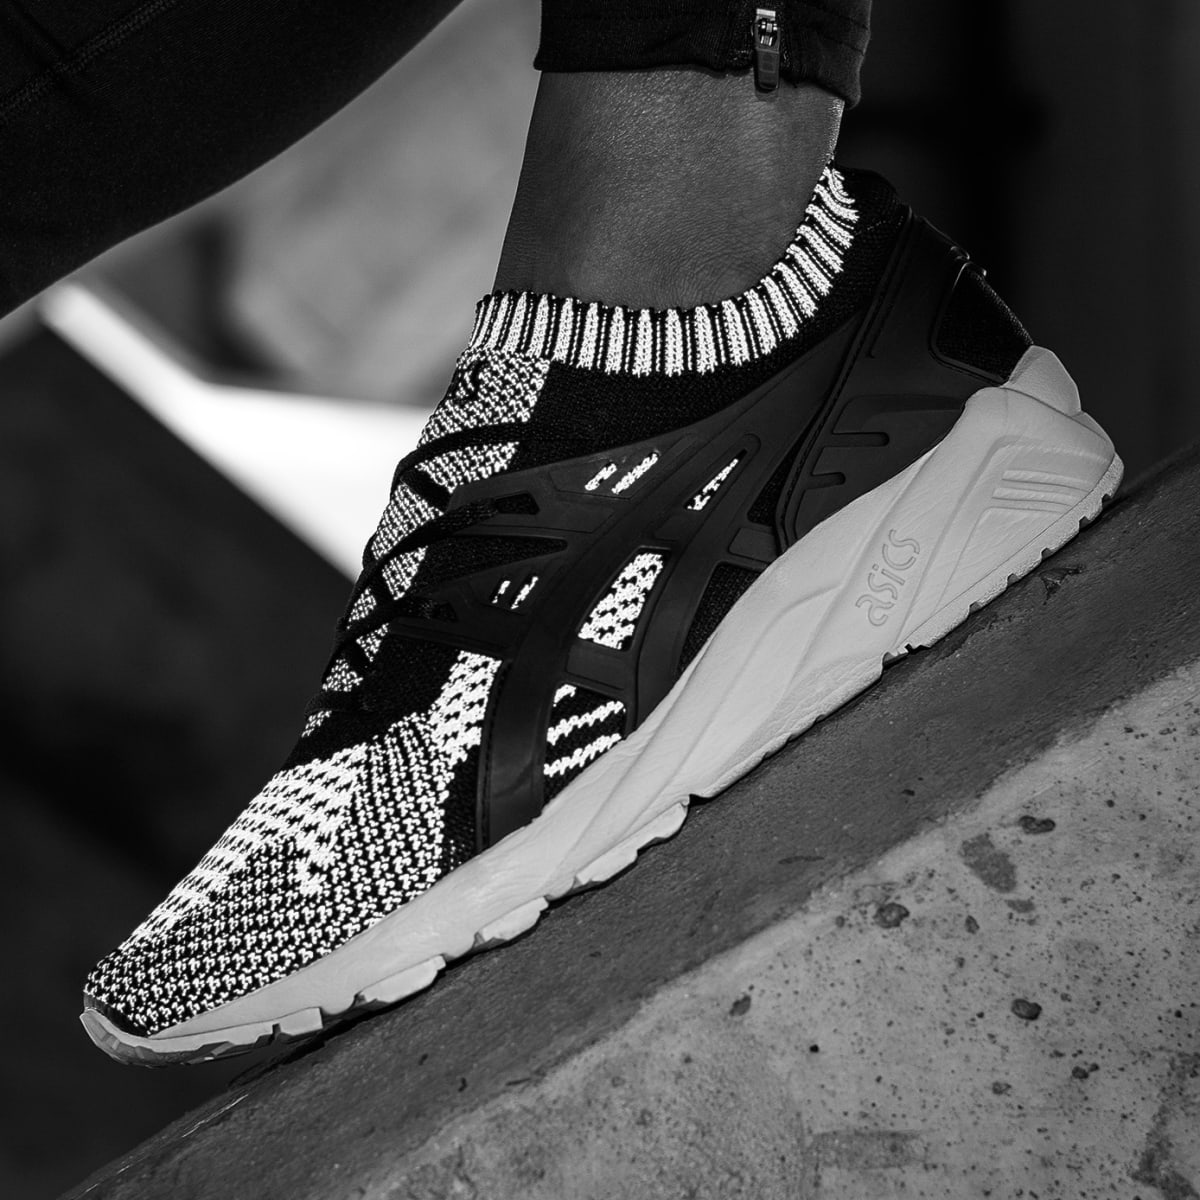 The ASICS GEL-Kayano Trainer Arrives in a Reflective Knit Build - Ietp